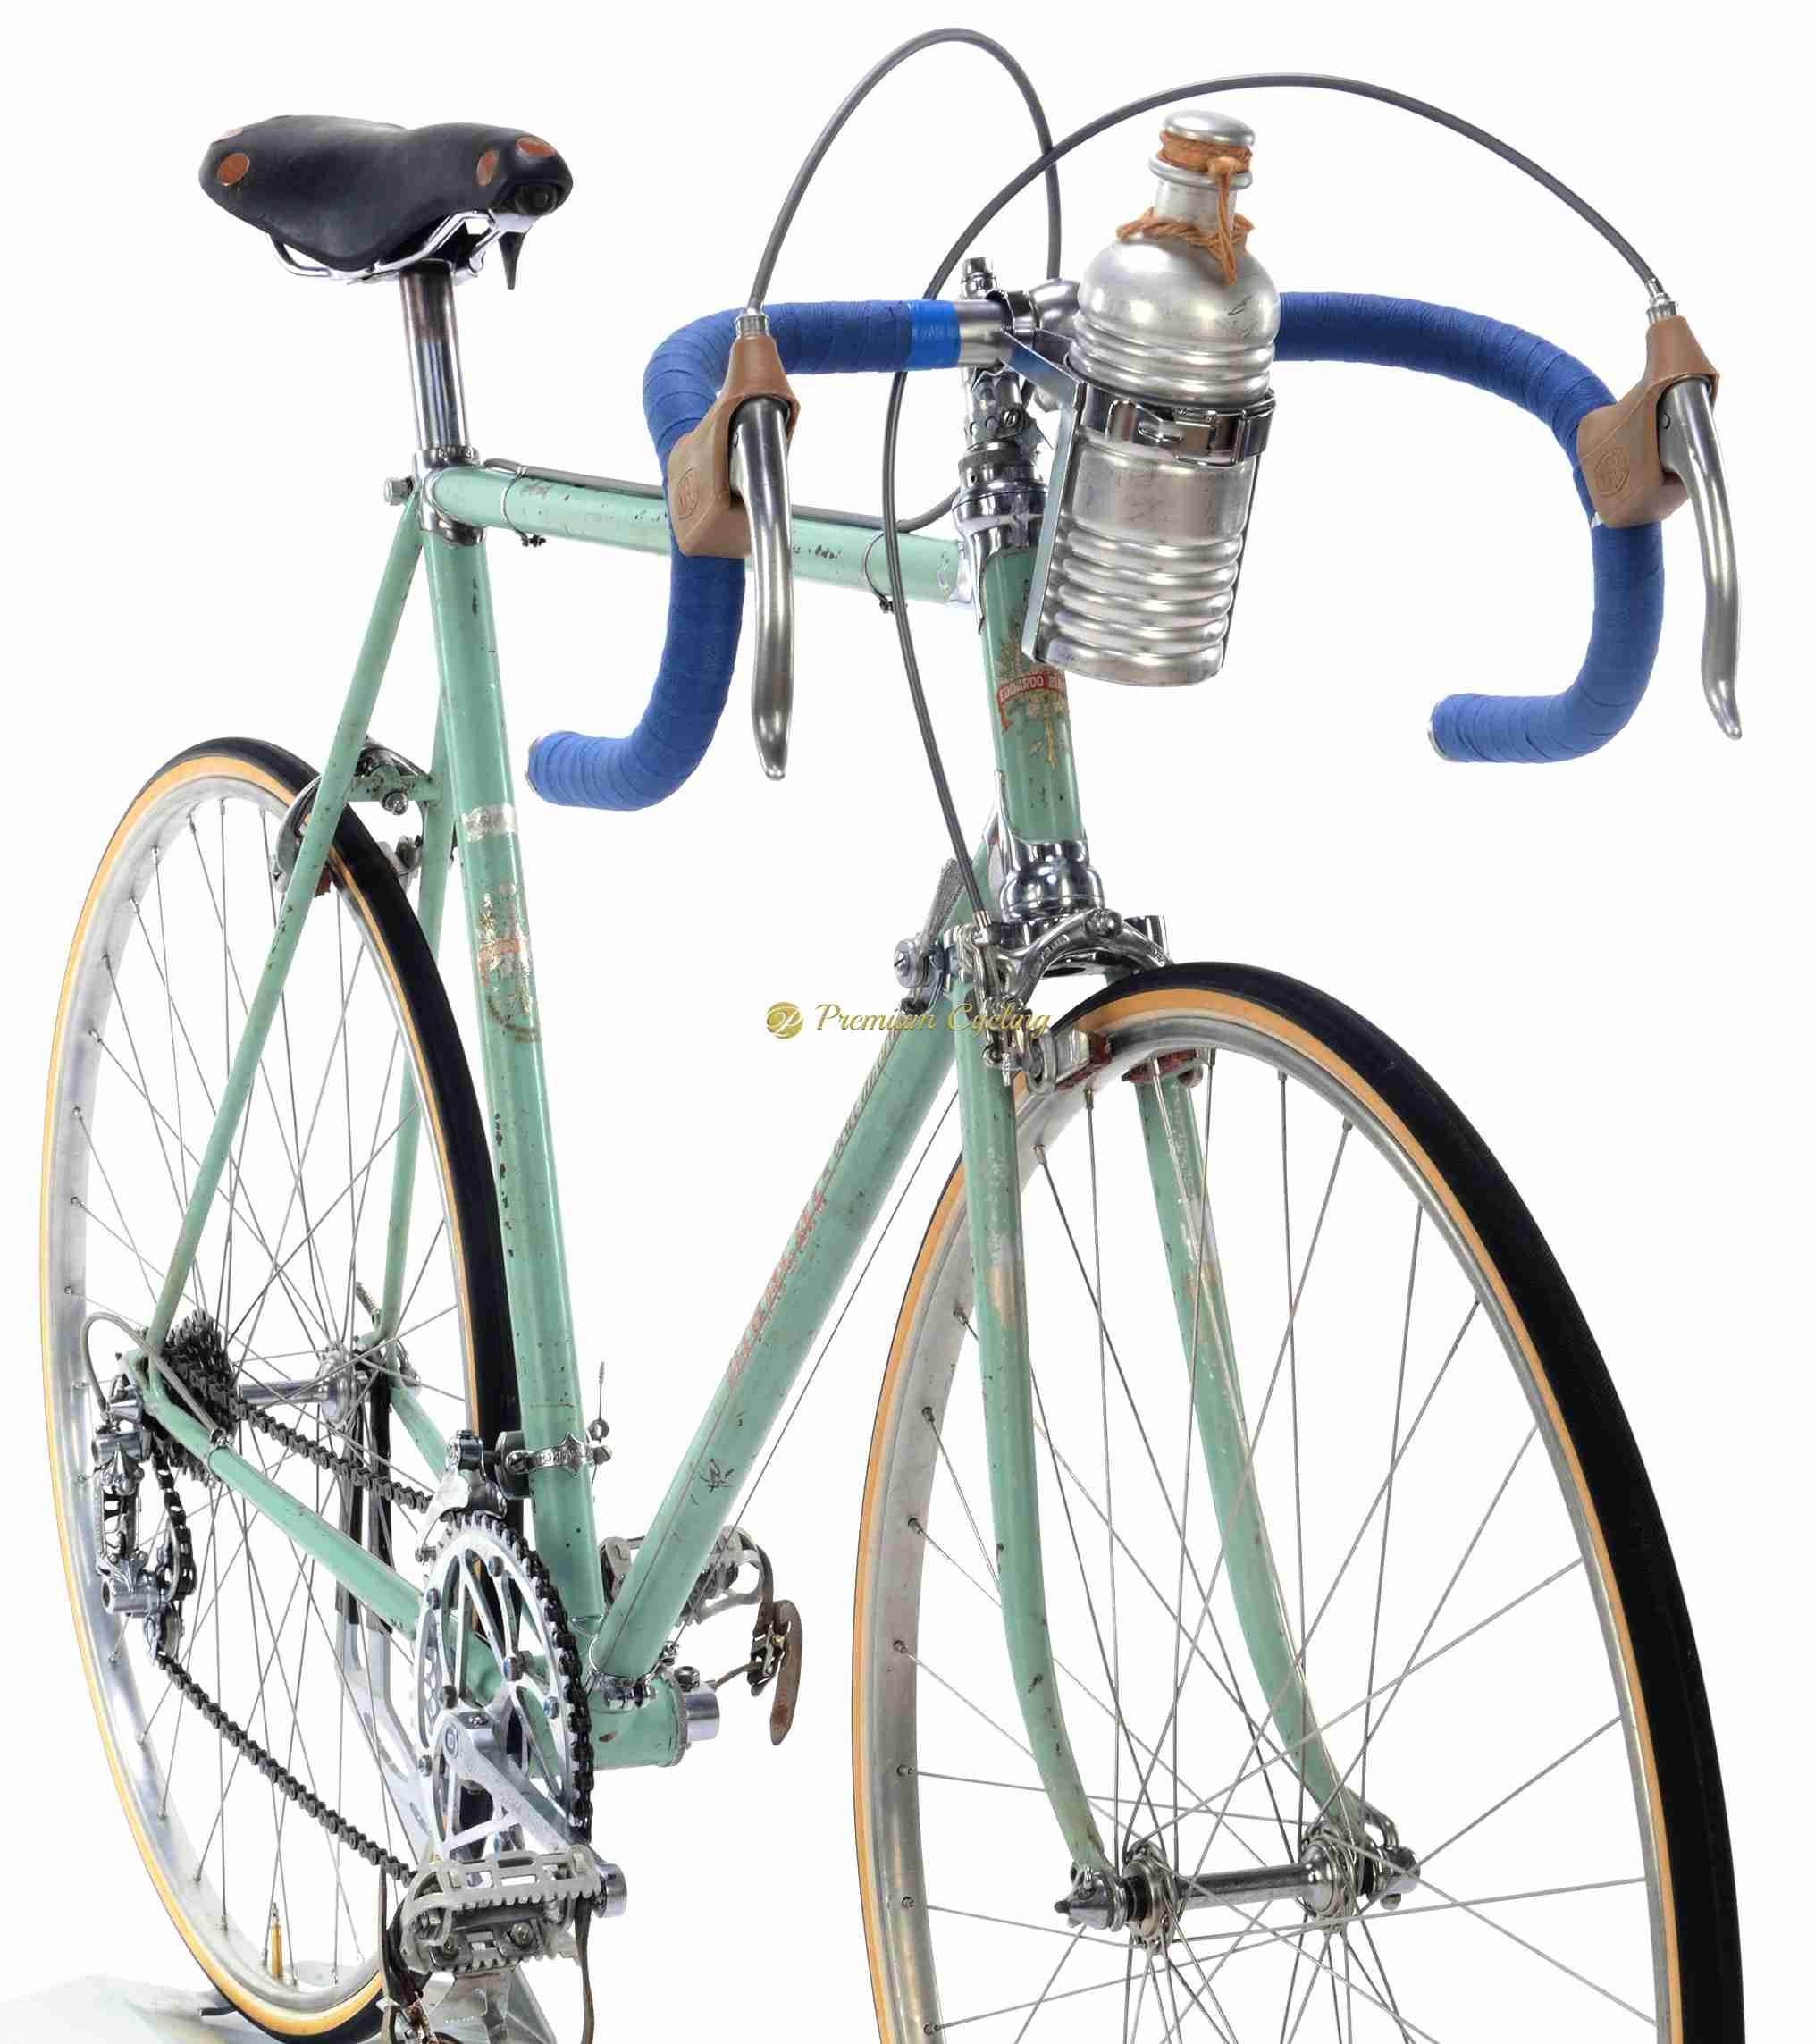 Bianchi Tour De France Campagnolo Gran Sport 59 5cm 1952 Sold Premium Cycling Website For Steel And Collectible Vintage Bikes Parts And Clothing